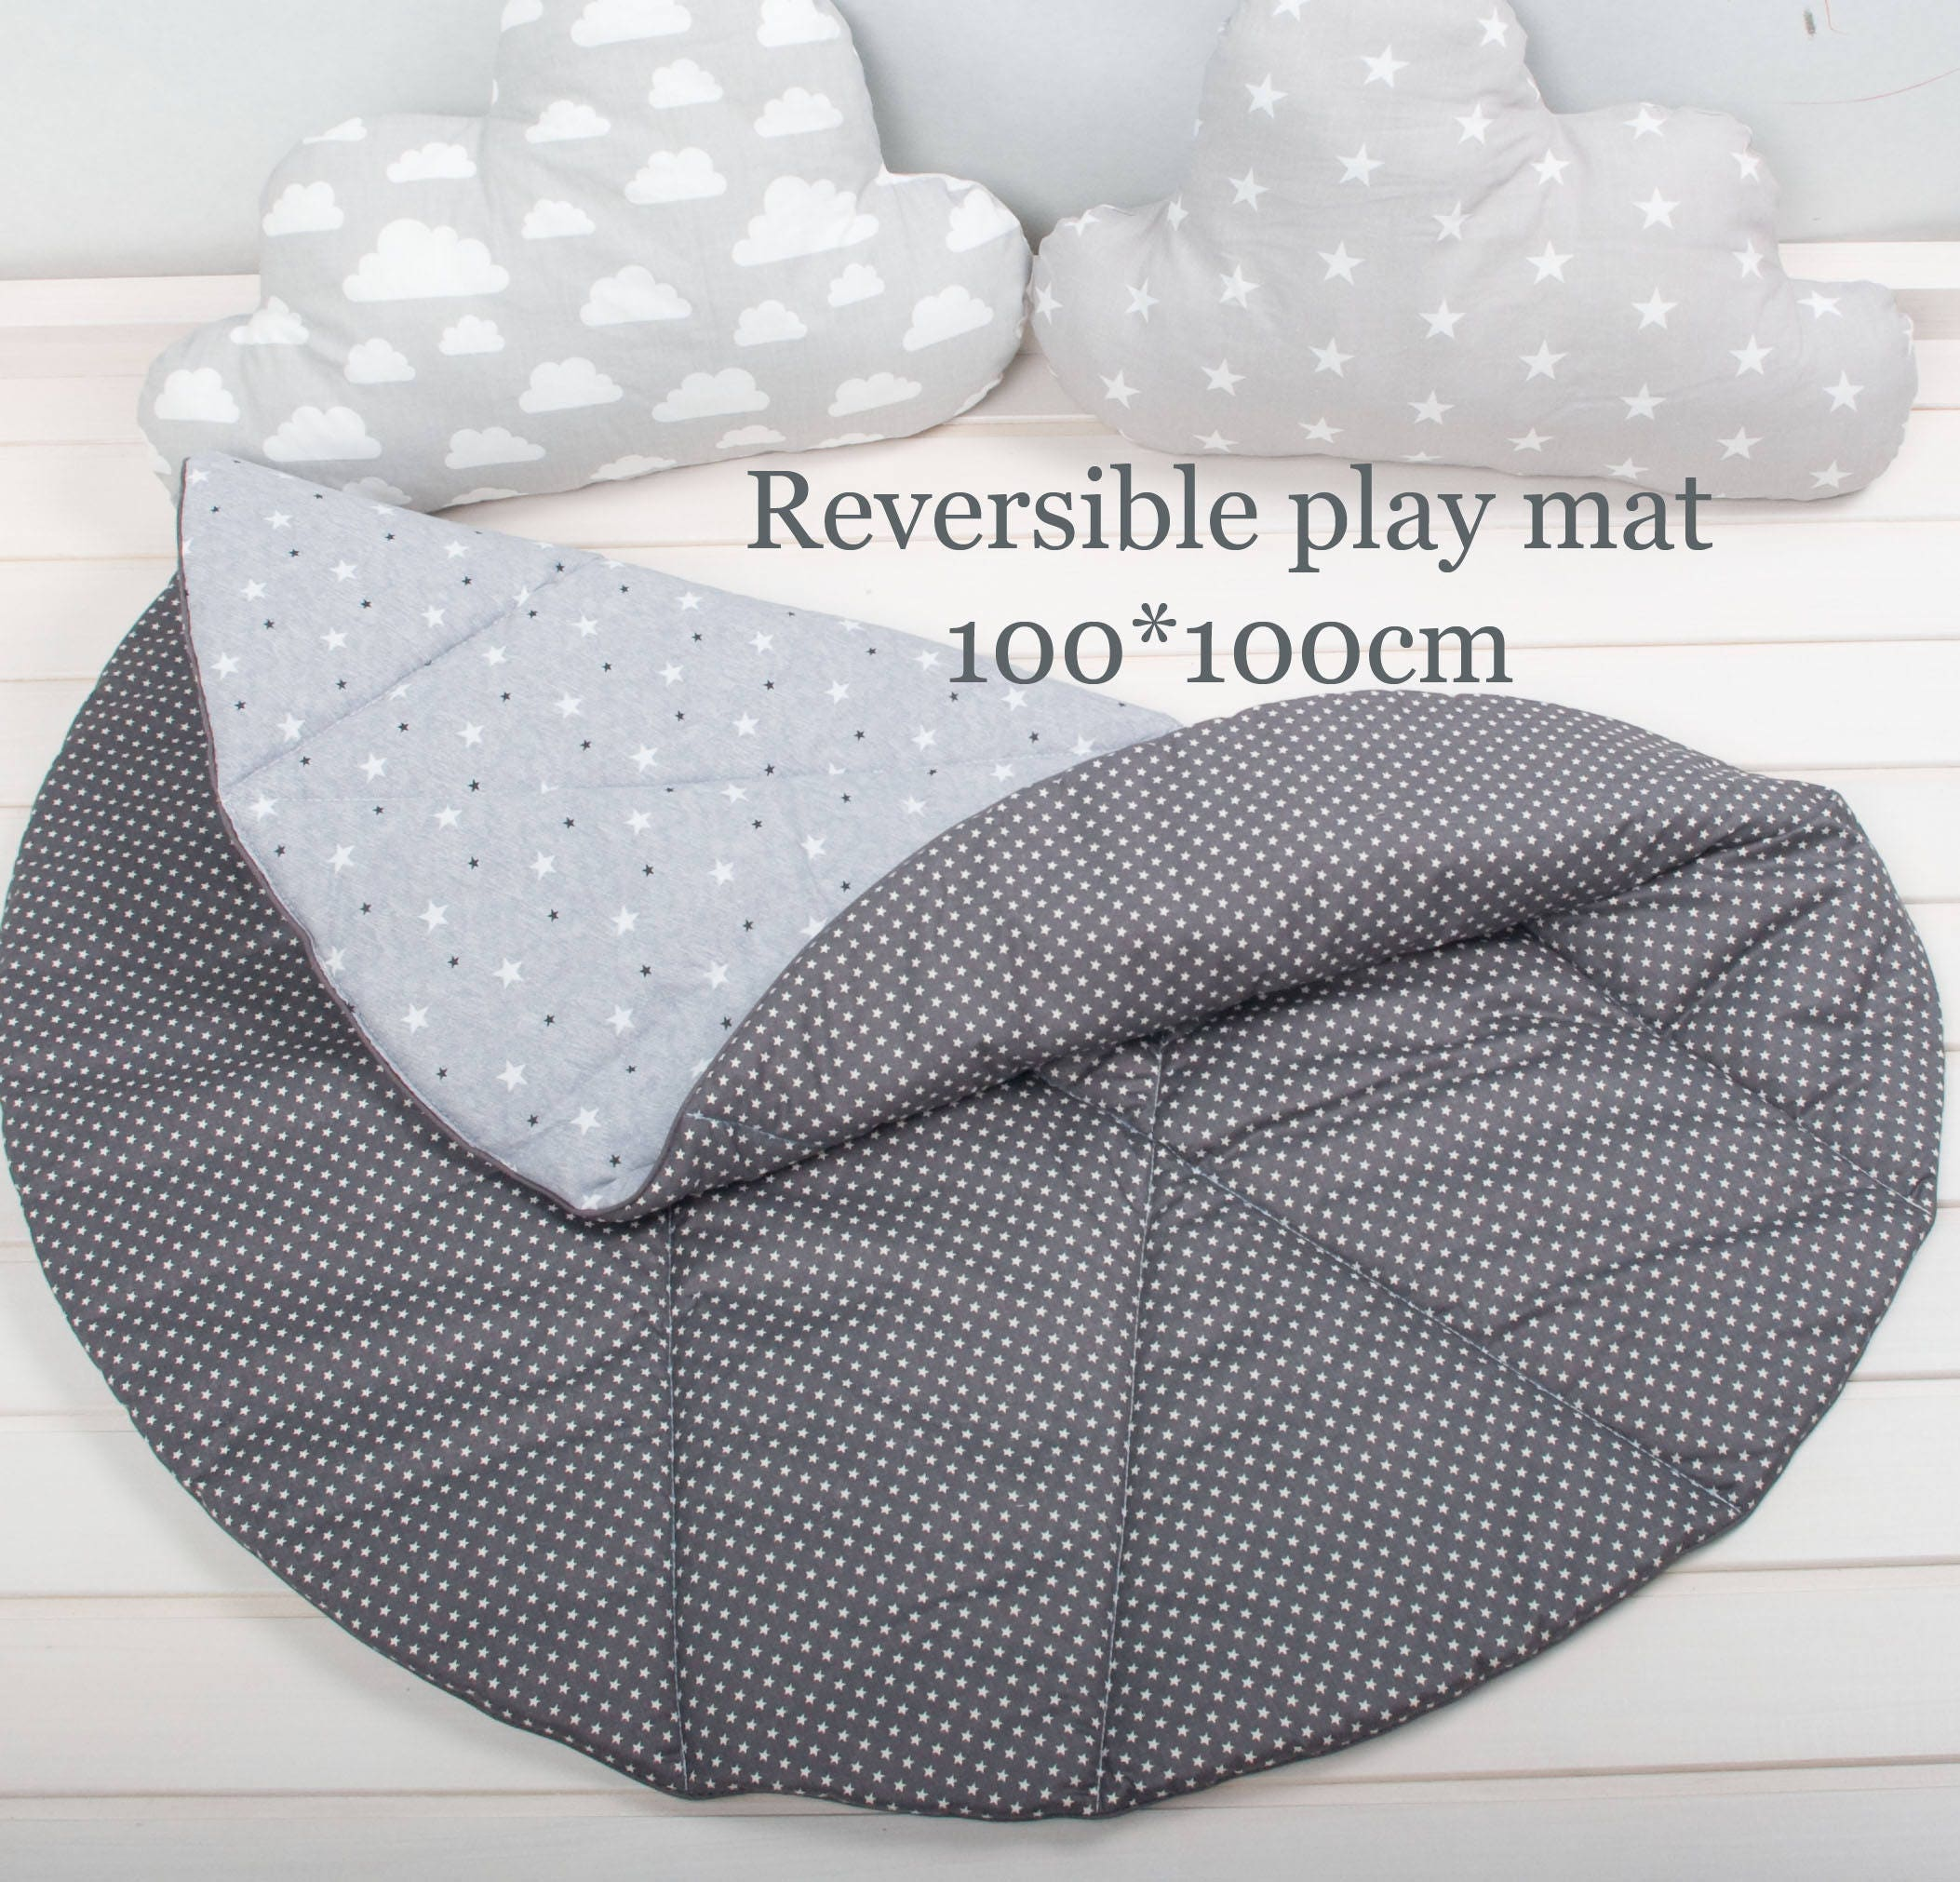 Round Play Mat Reversible Play Mat Baby Play Mat Padded